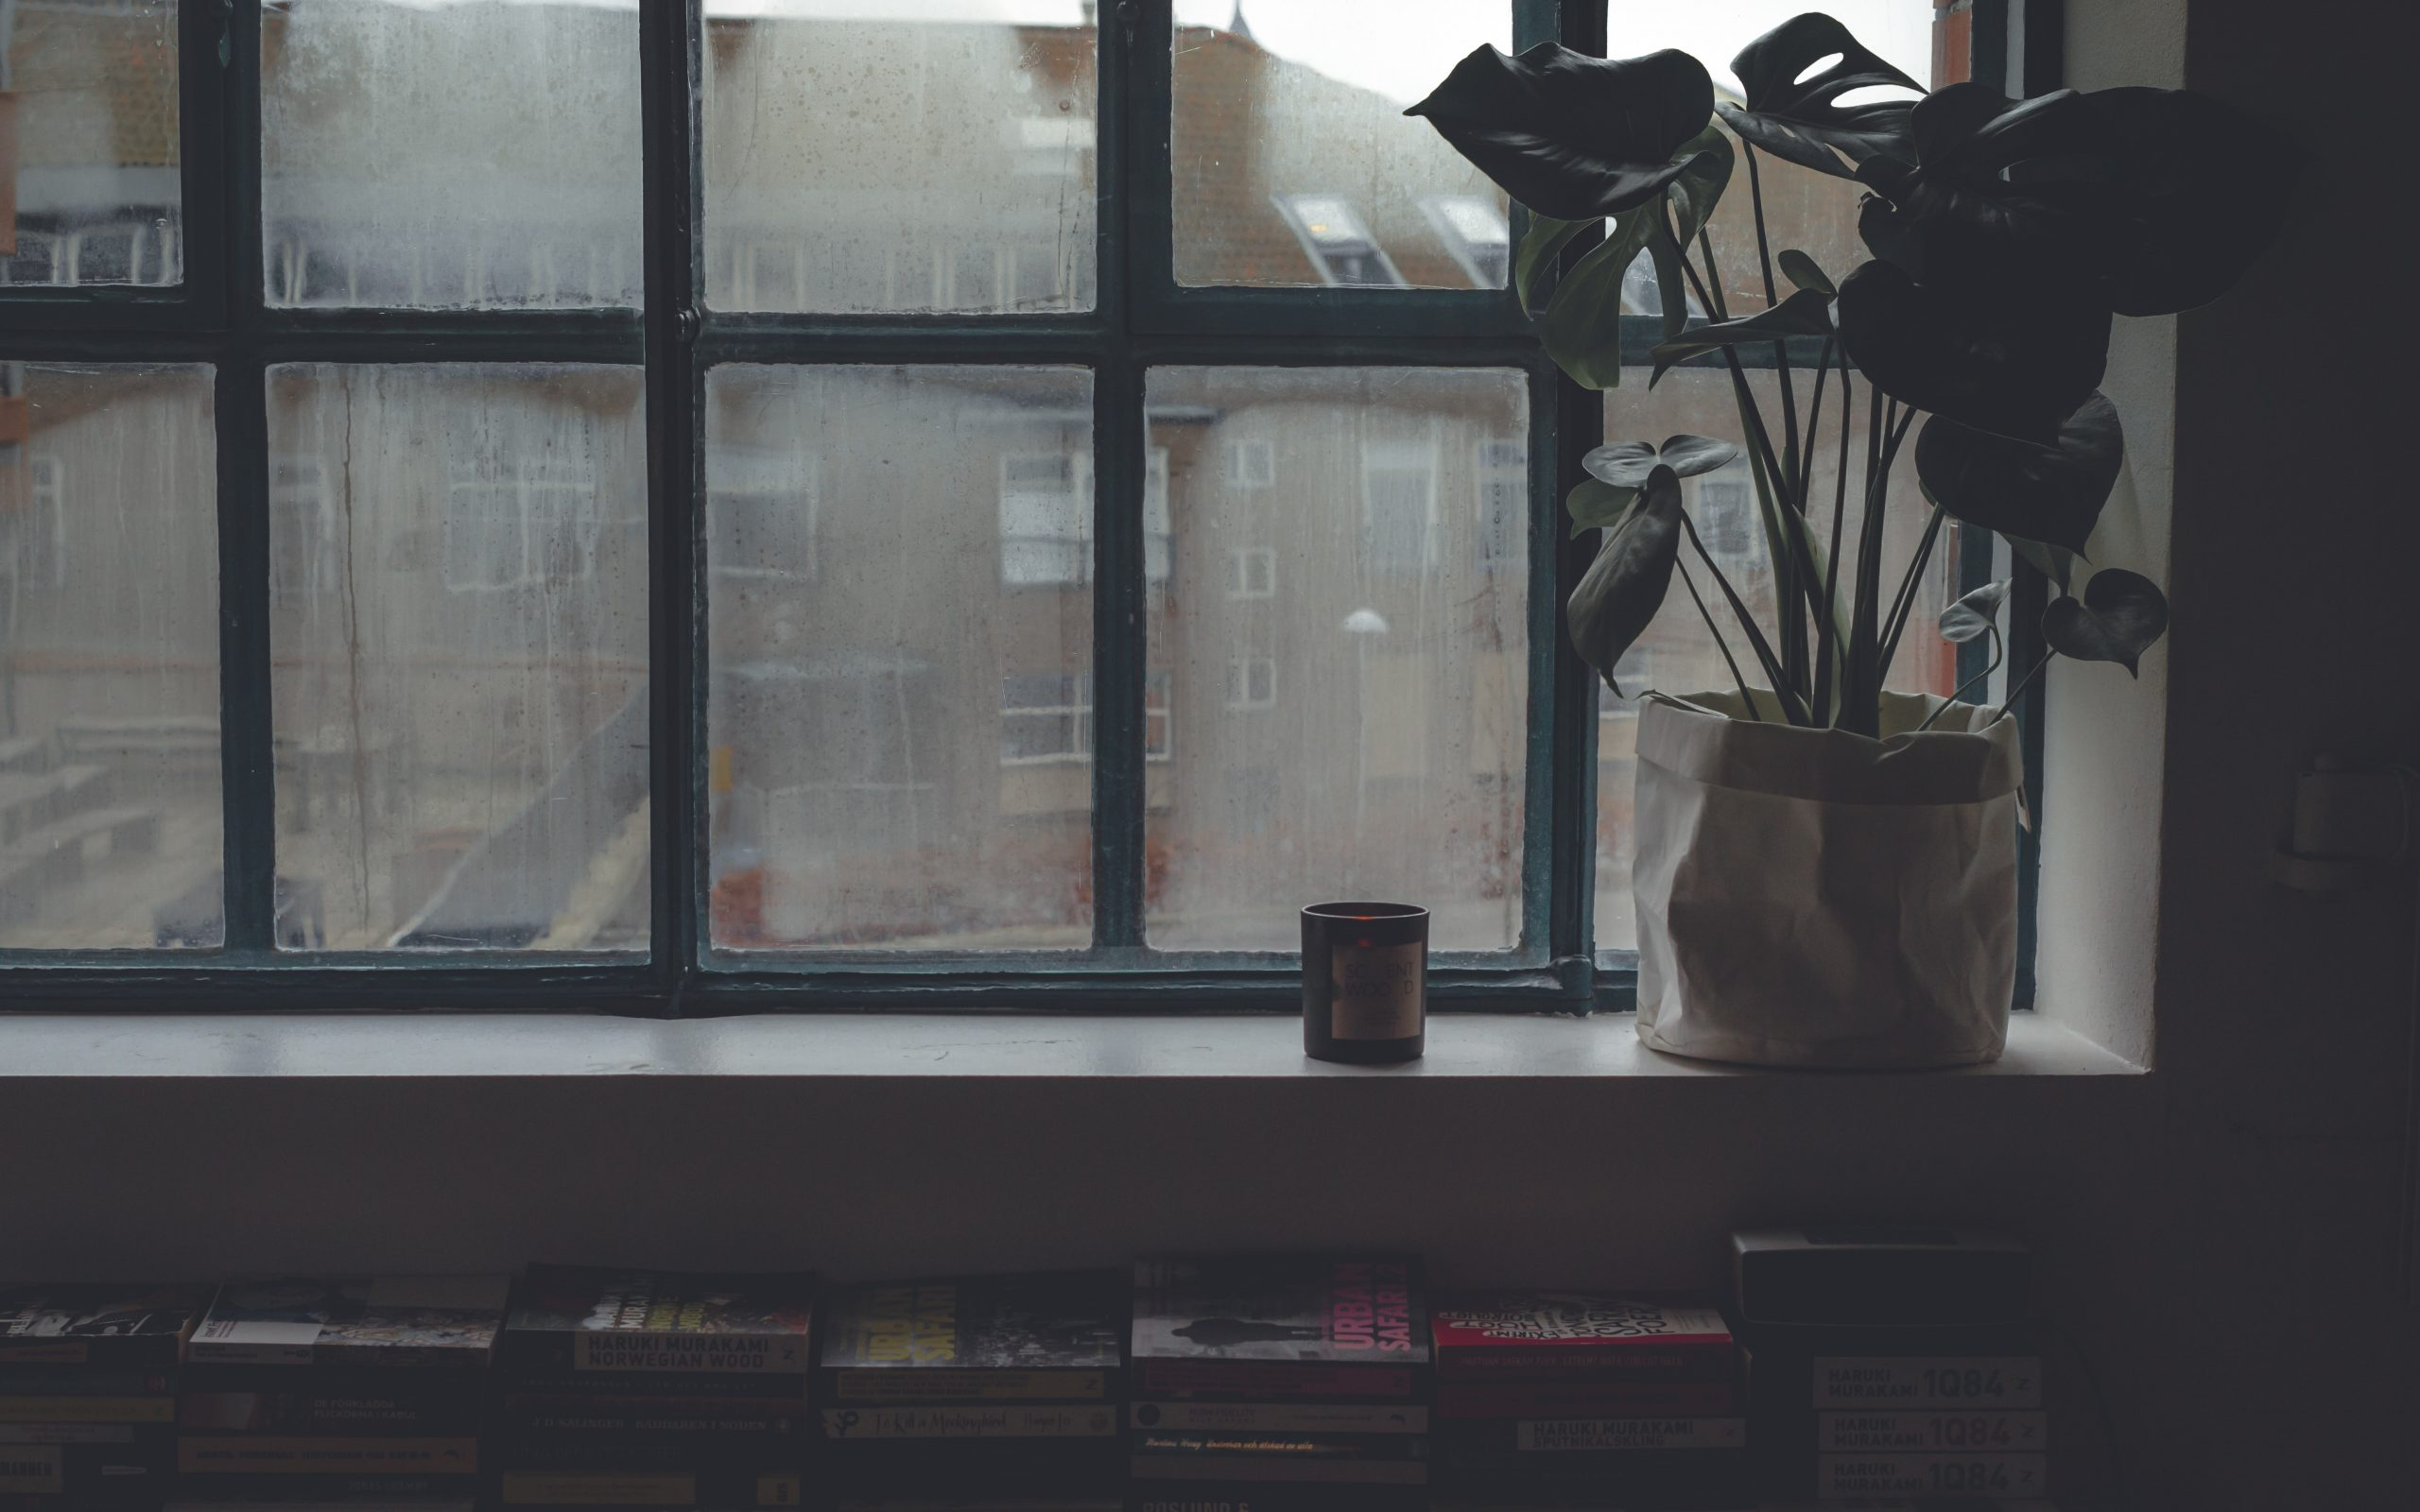 the hype on hygge, dreary window